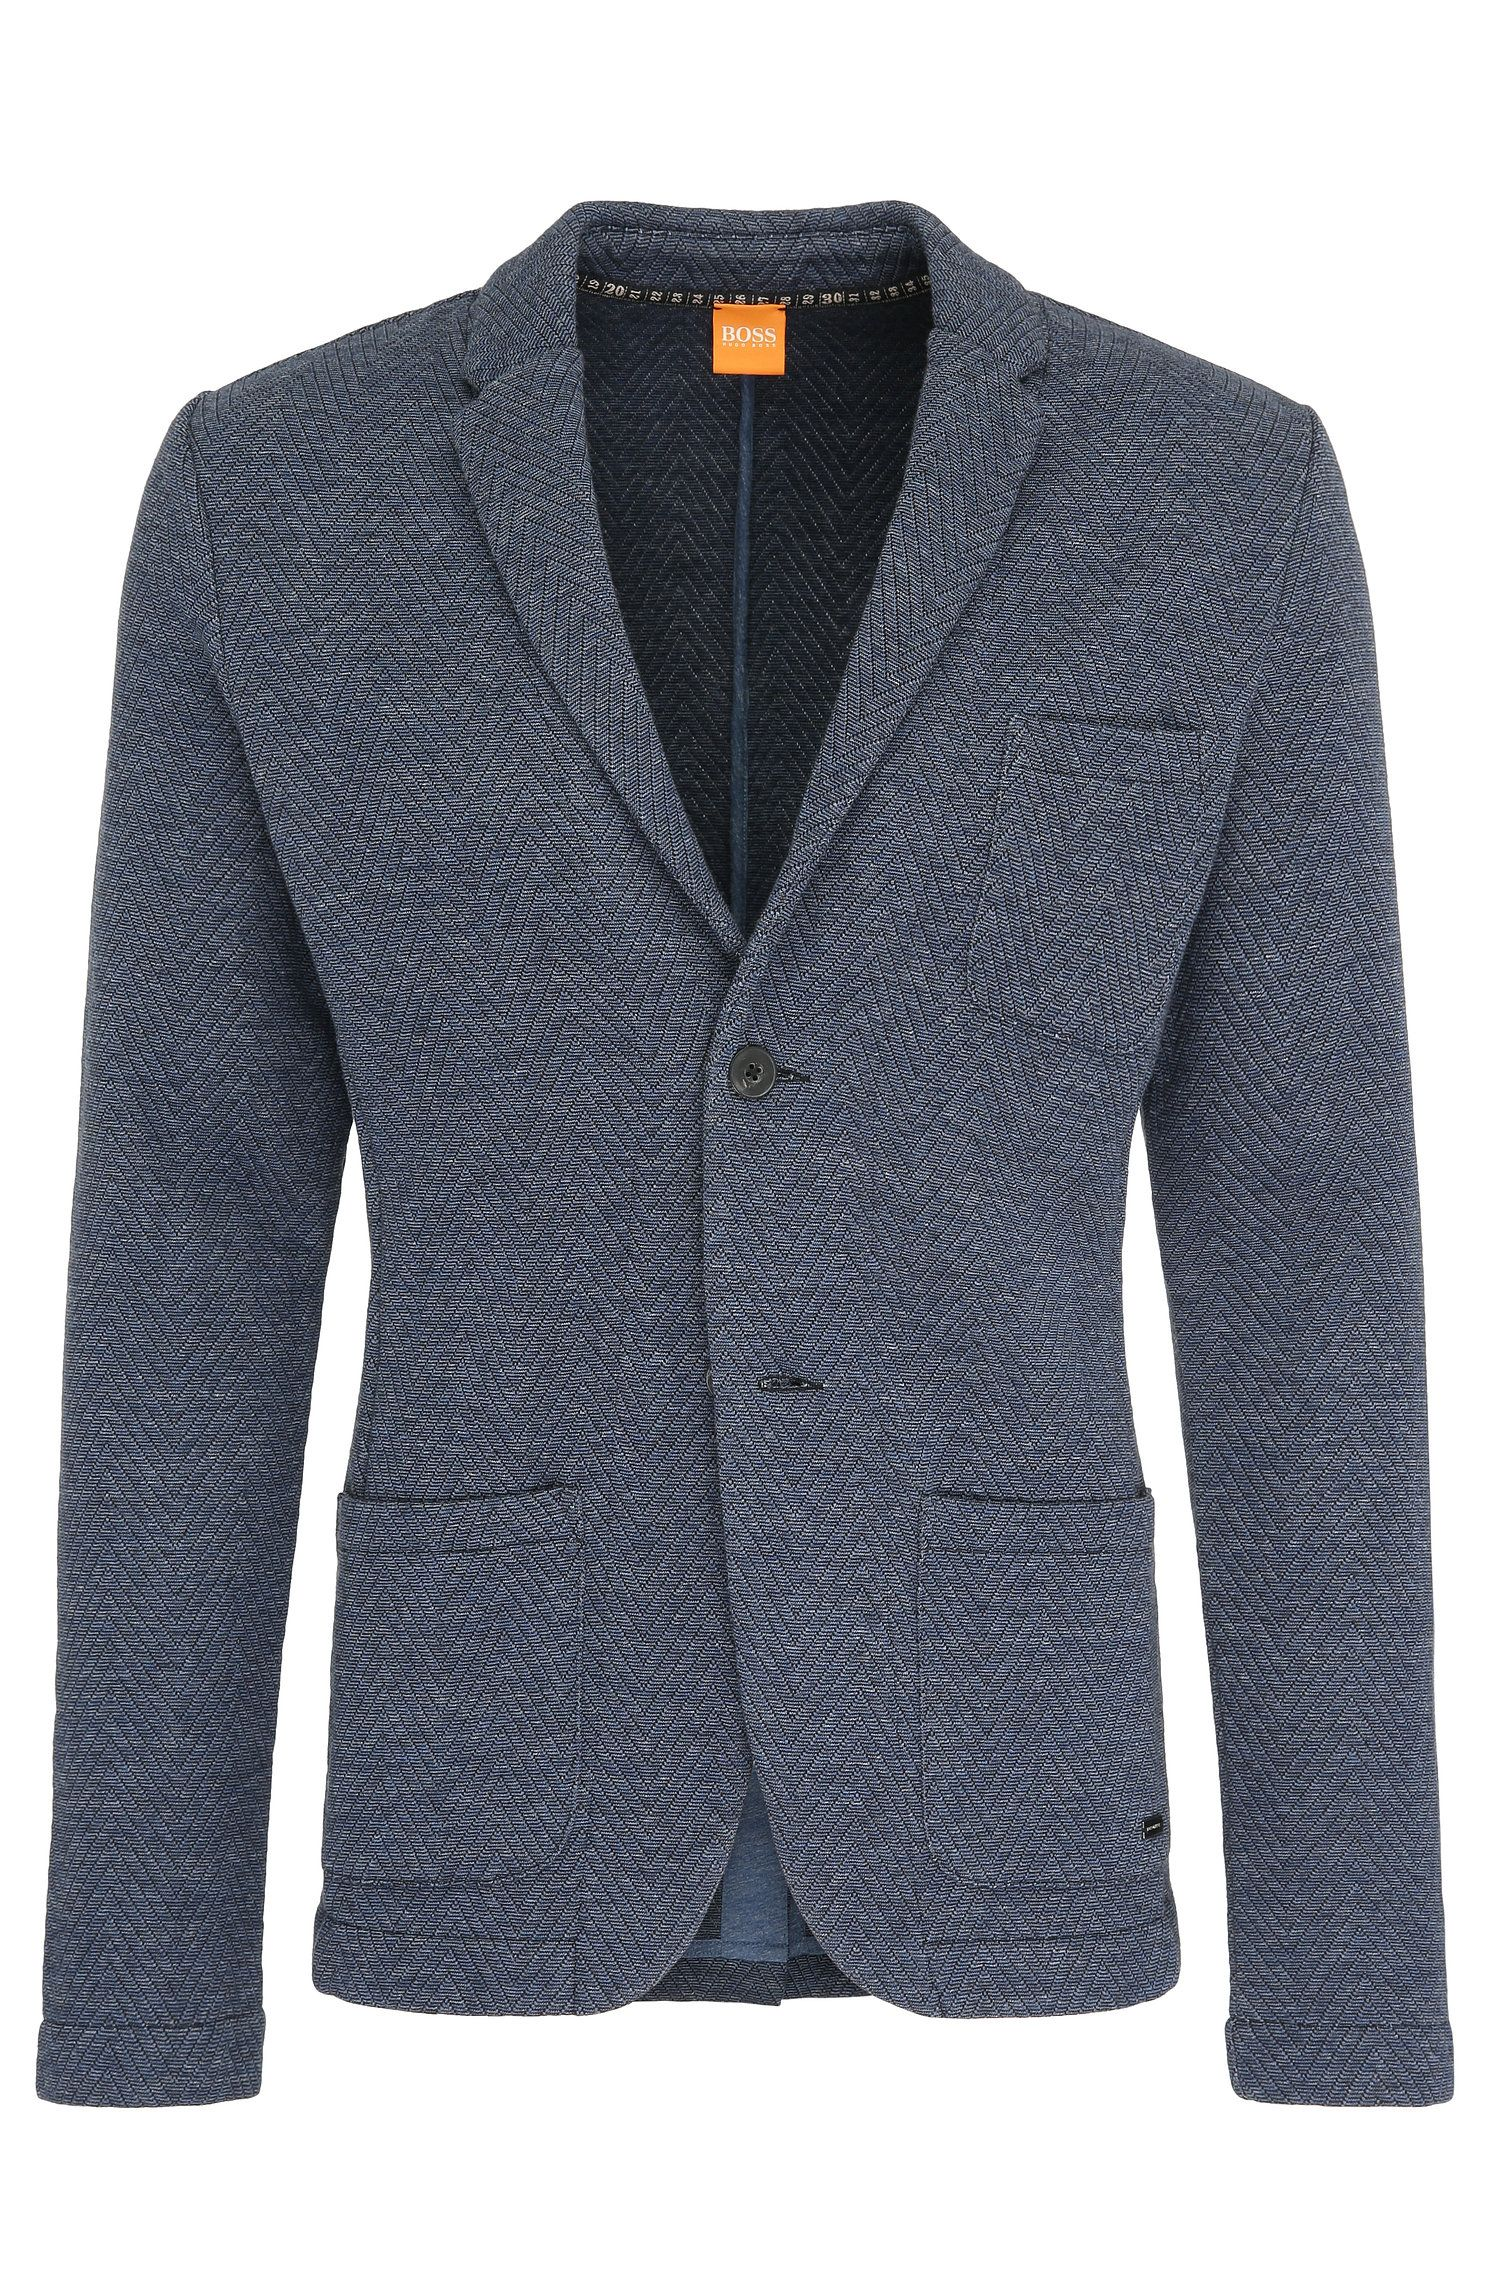 Mottled slim-fit jacket in textured cotton blend: 'Ward'